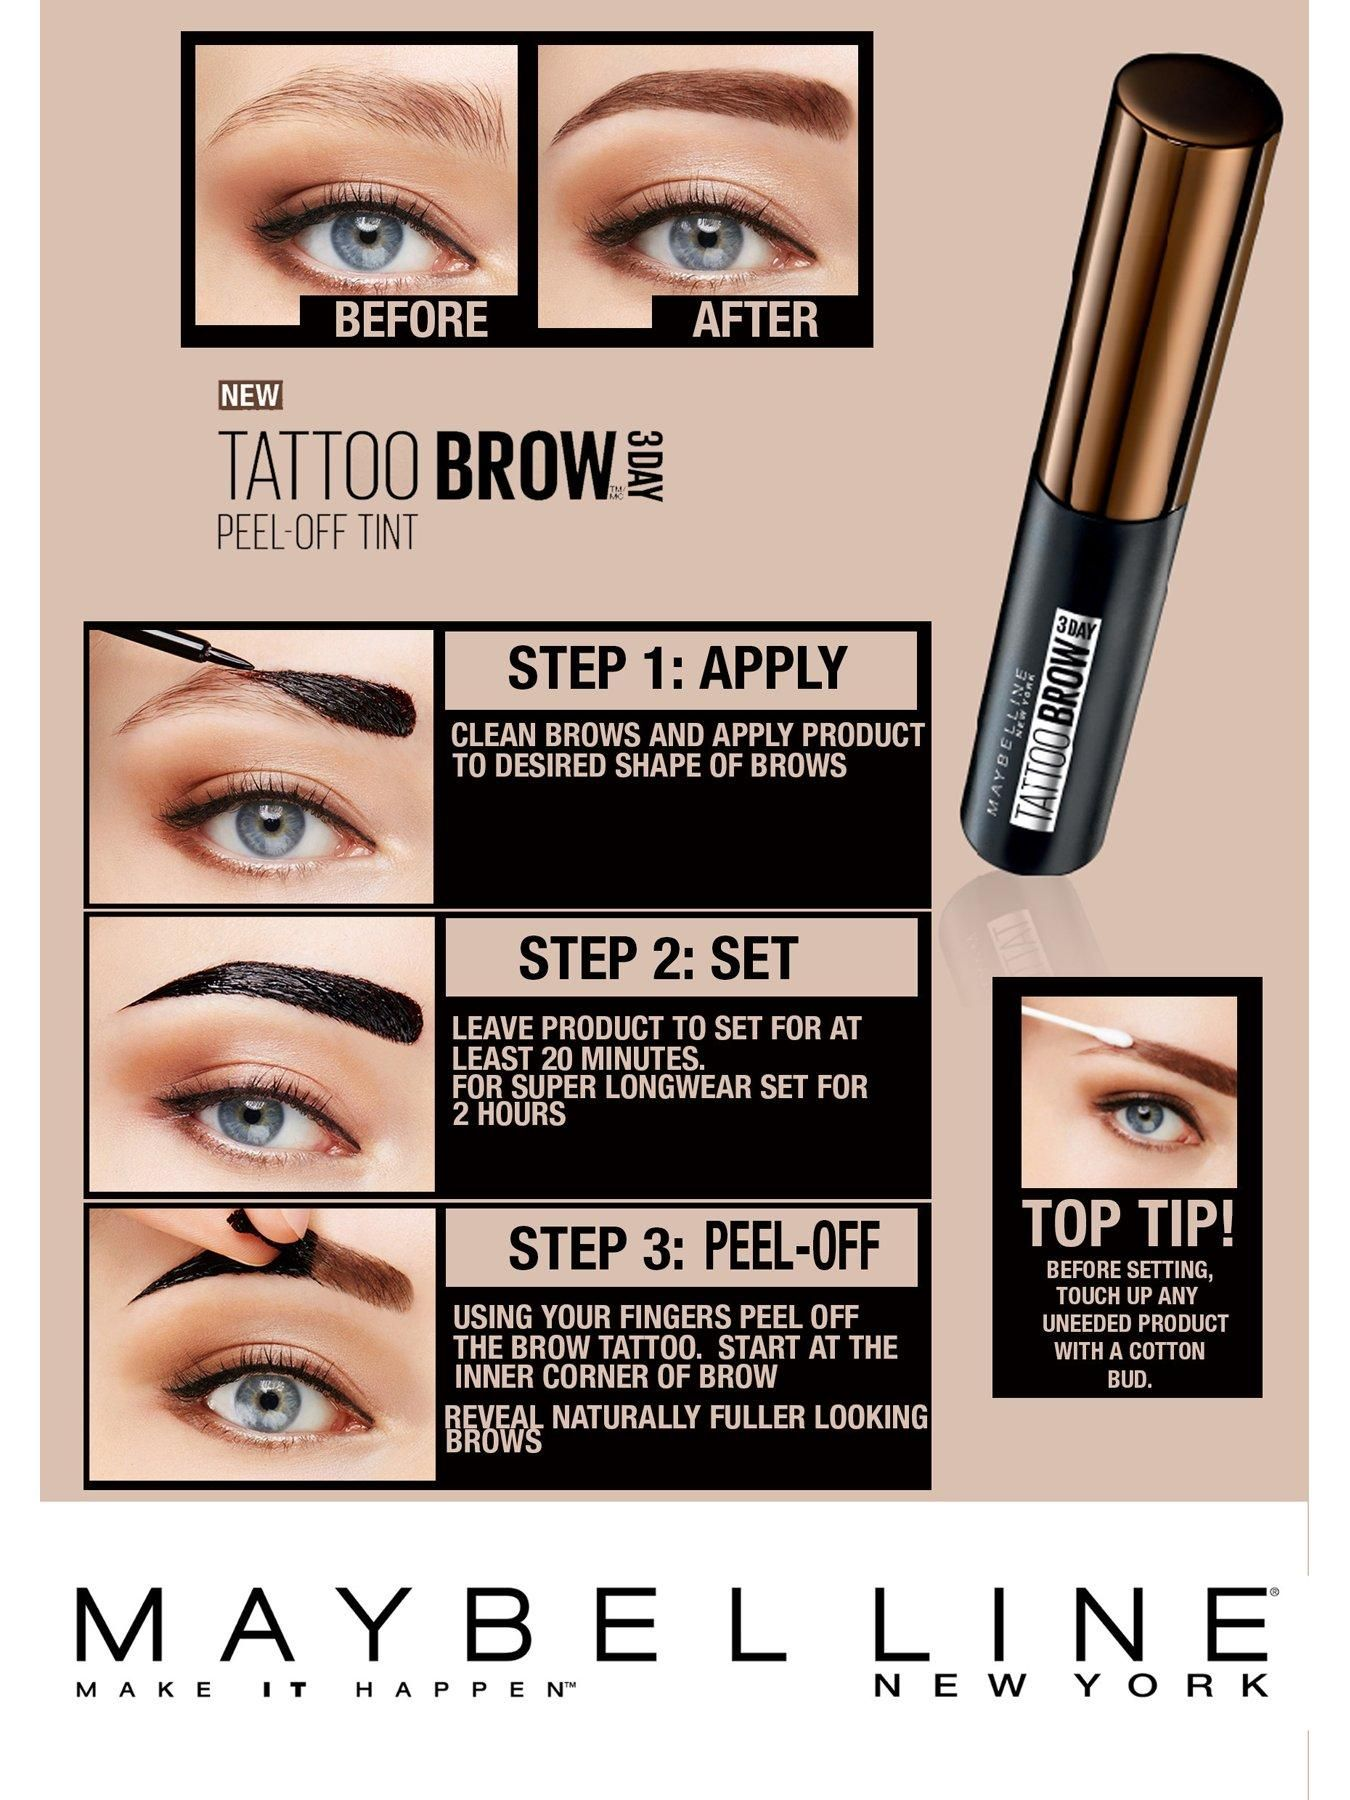 Maybelline Maybelline Tattoo Brow Longlasting Gel Tint in